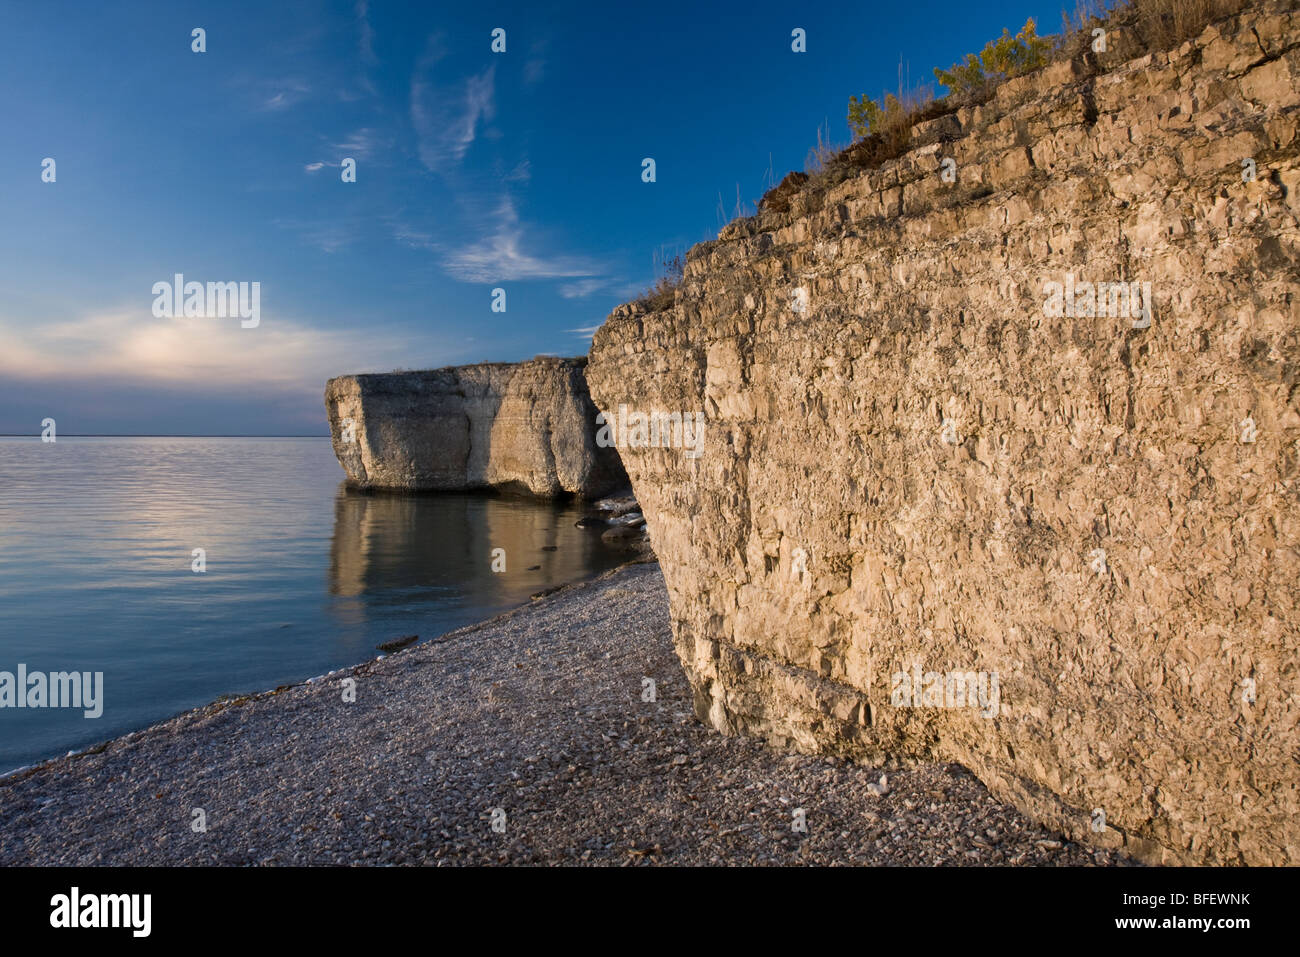 Cliffs and pebble beach on the shore of Lake Manitoba at Steep Rock in Manitoba, Canada - Stock Image